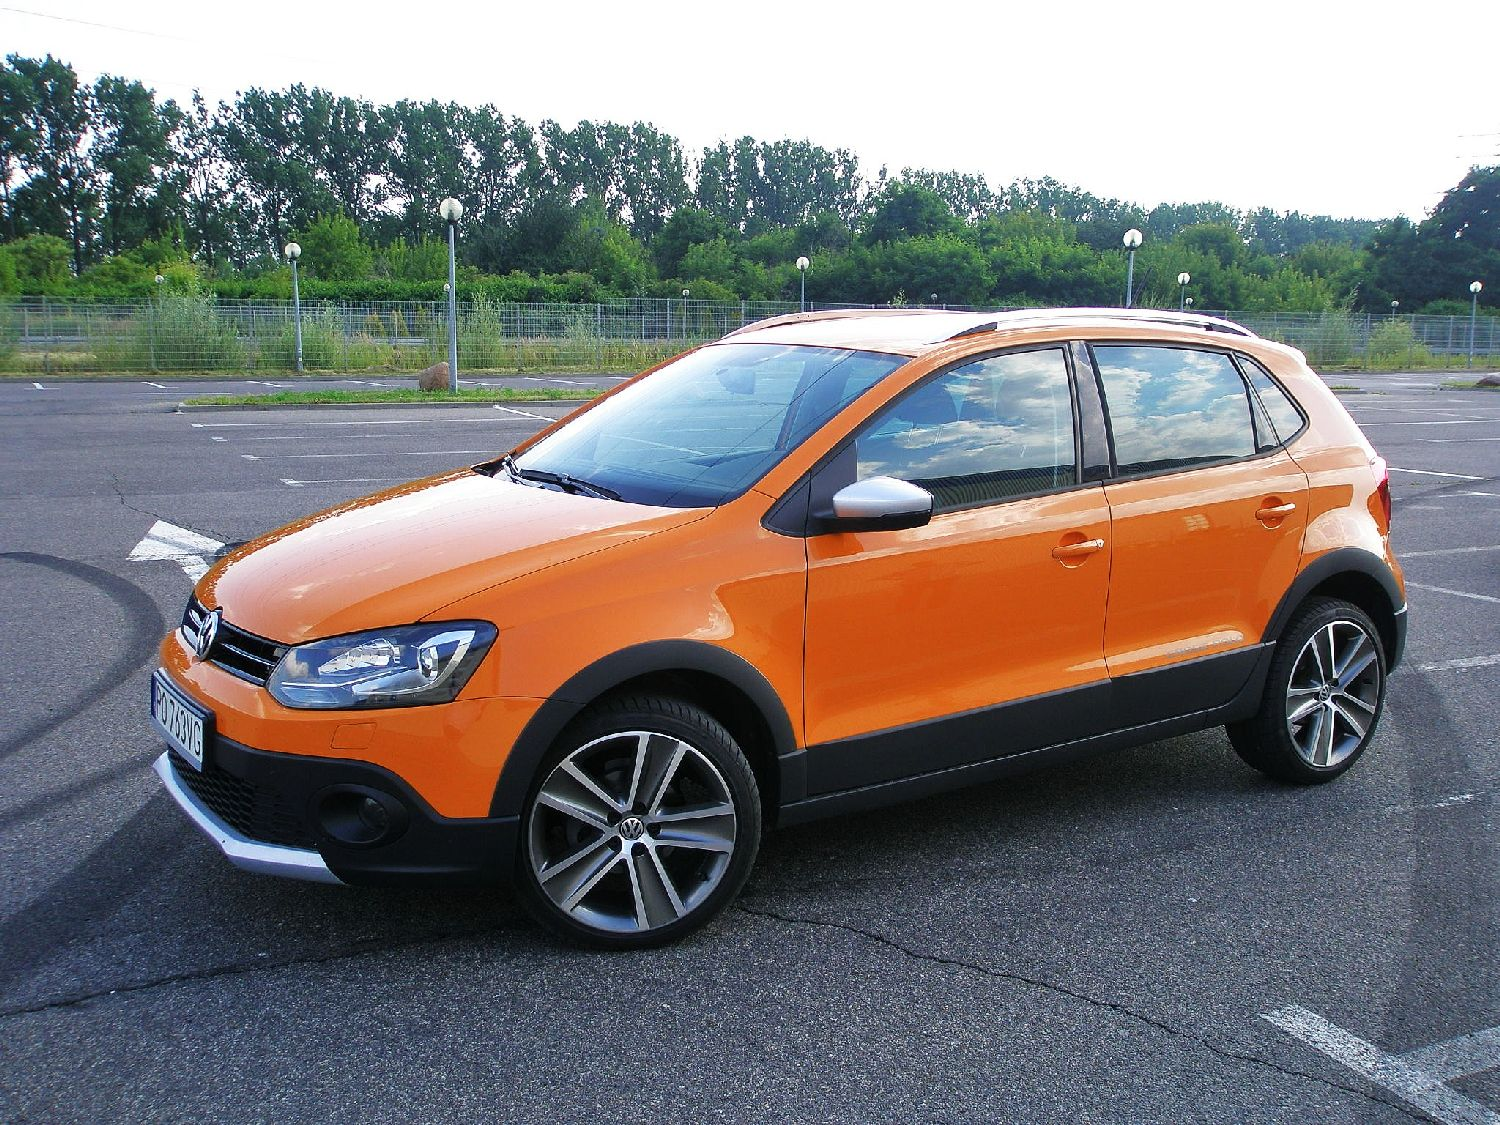 volkswagen cross polo 1 2 tsi w teren miejski namasce. Black Bedroom Furniture Sets. Home Design Ideas